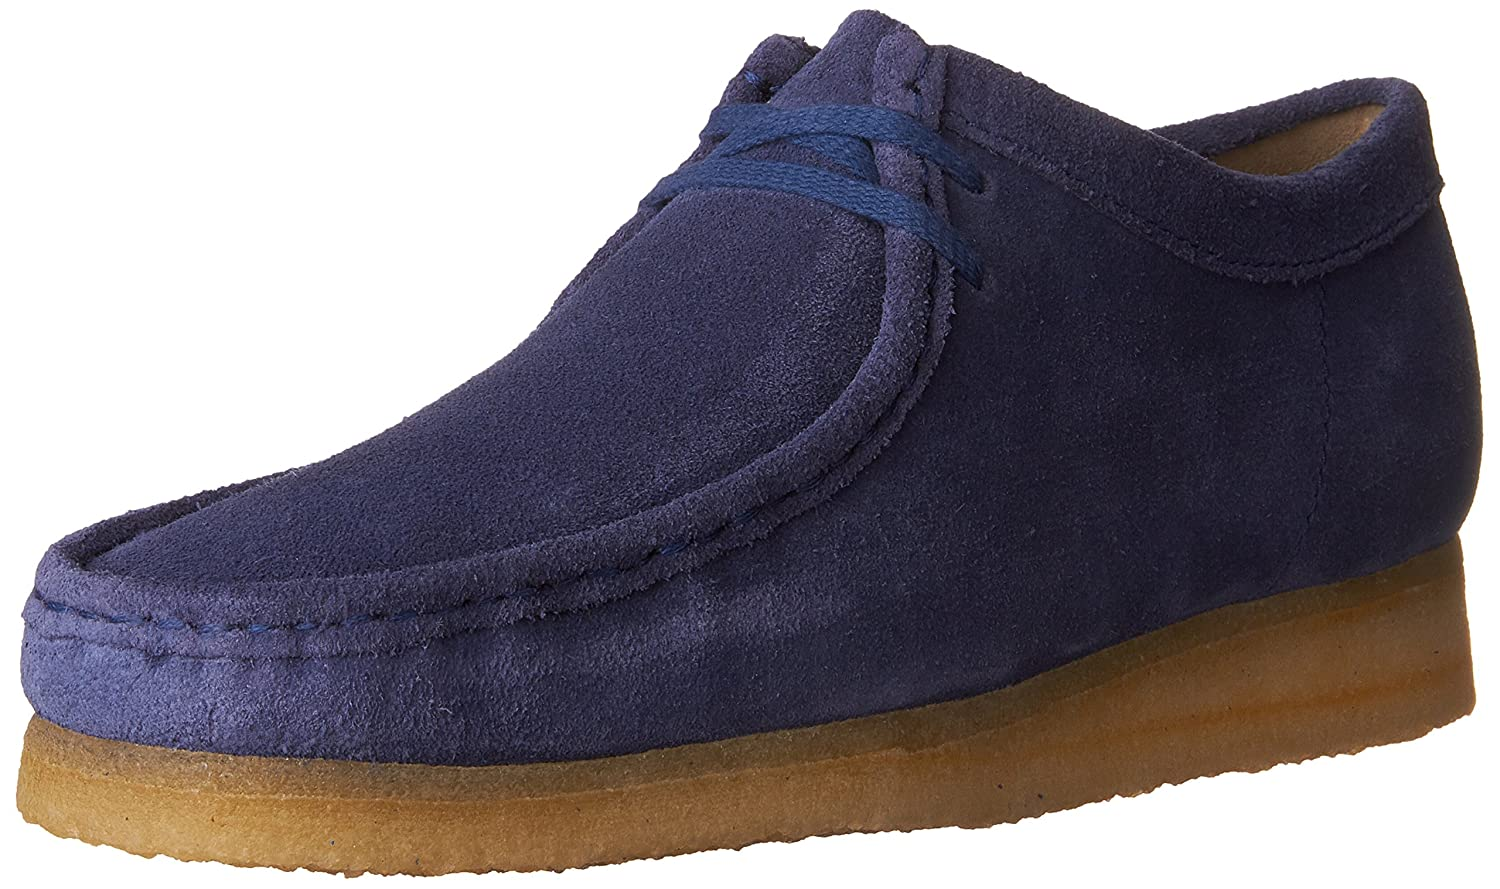 CLARKS Men's Wallabee Shoe B01I4MHBOI 9 D(M) US|Night Blue